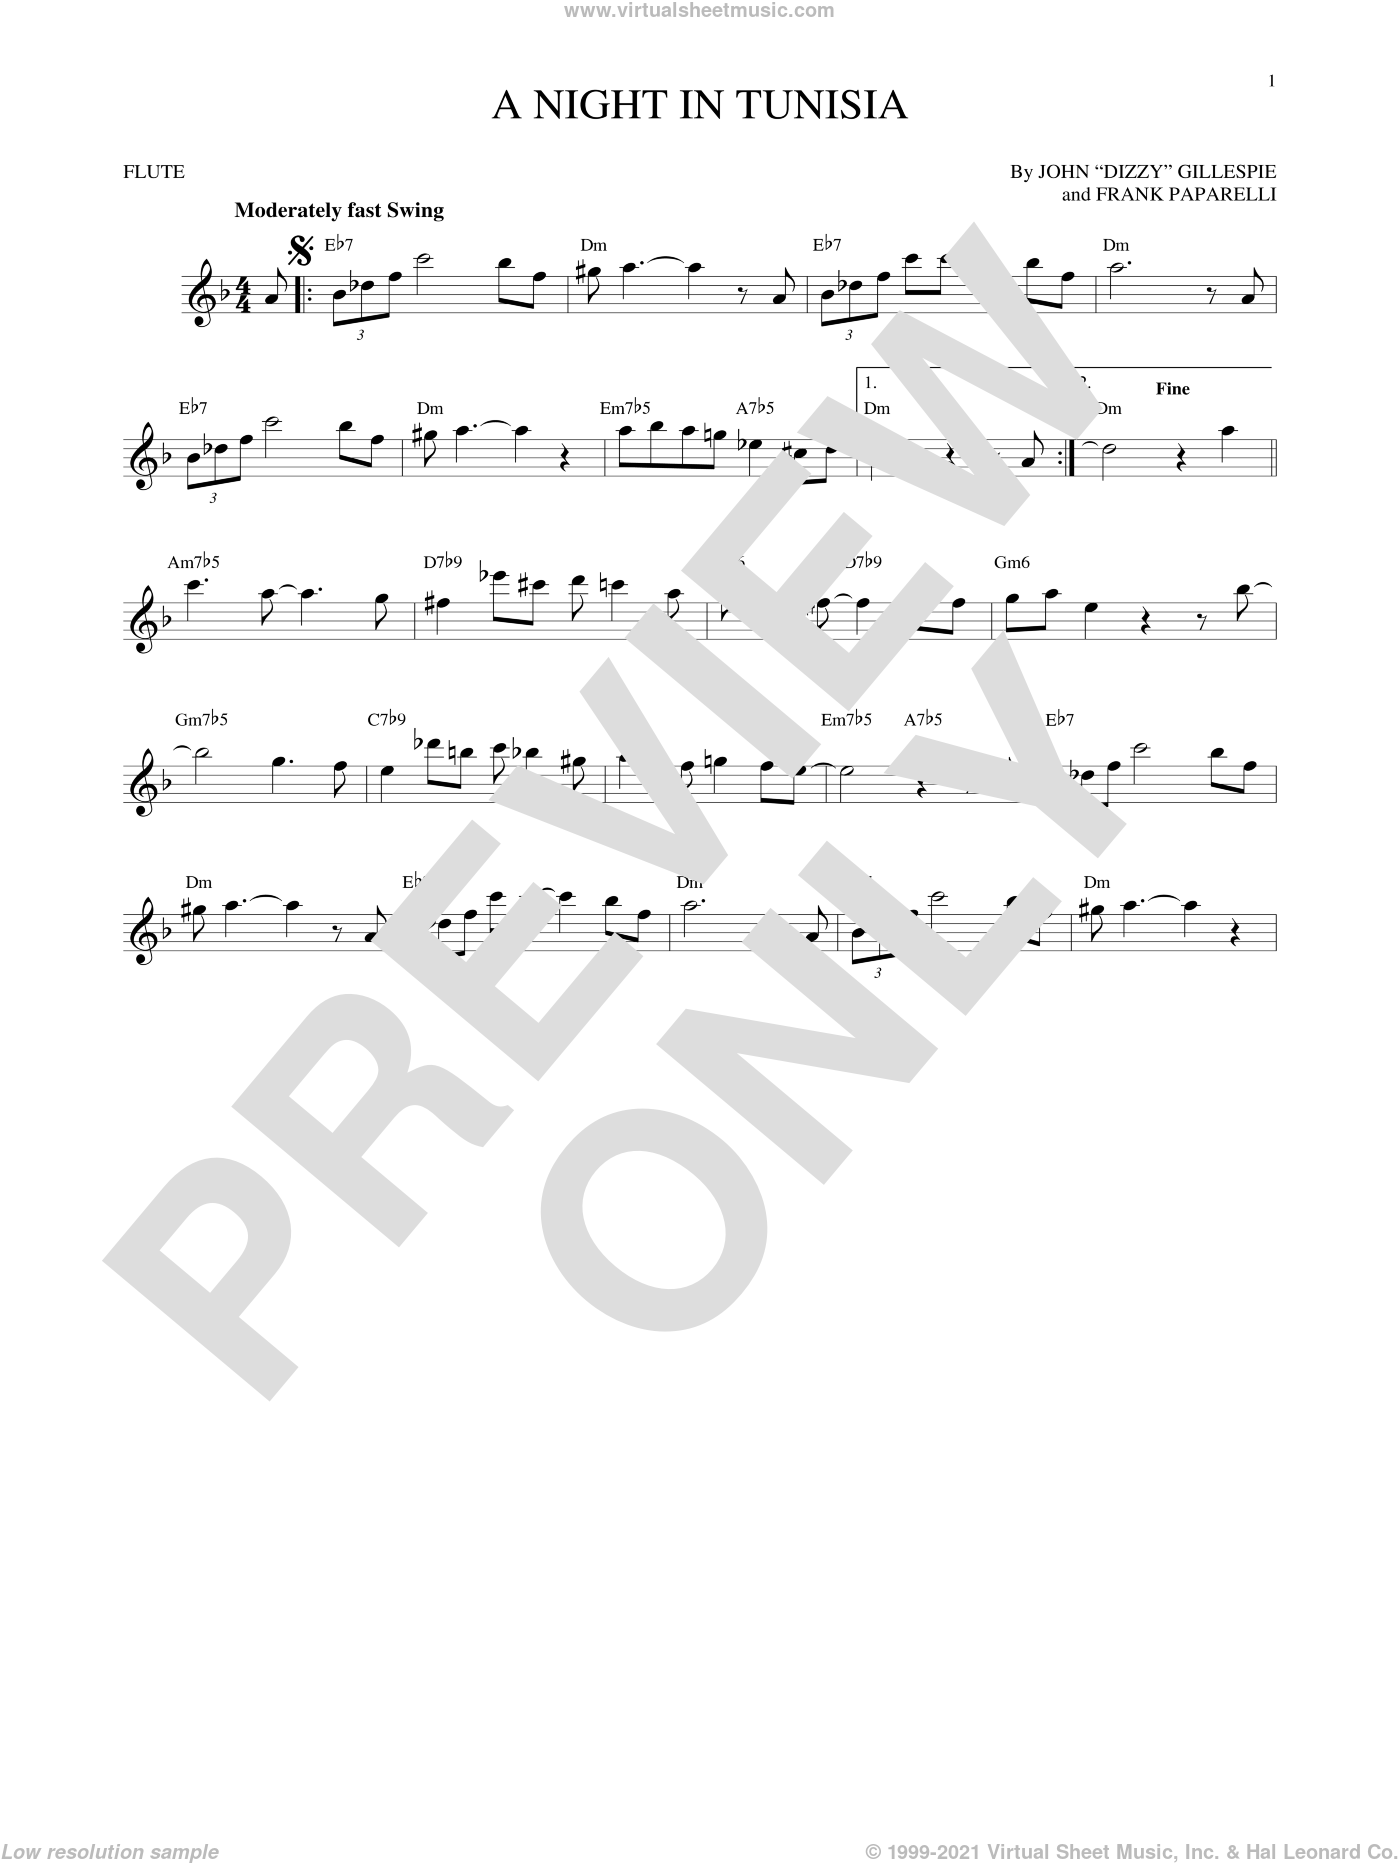 A Night In Tunisia sheet music for flute solo by Frank Paparelli and Dizzy Gillespie. Score Image Preview.